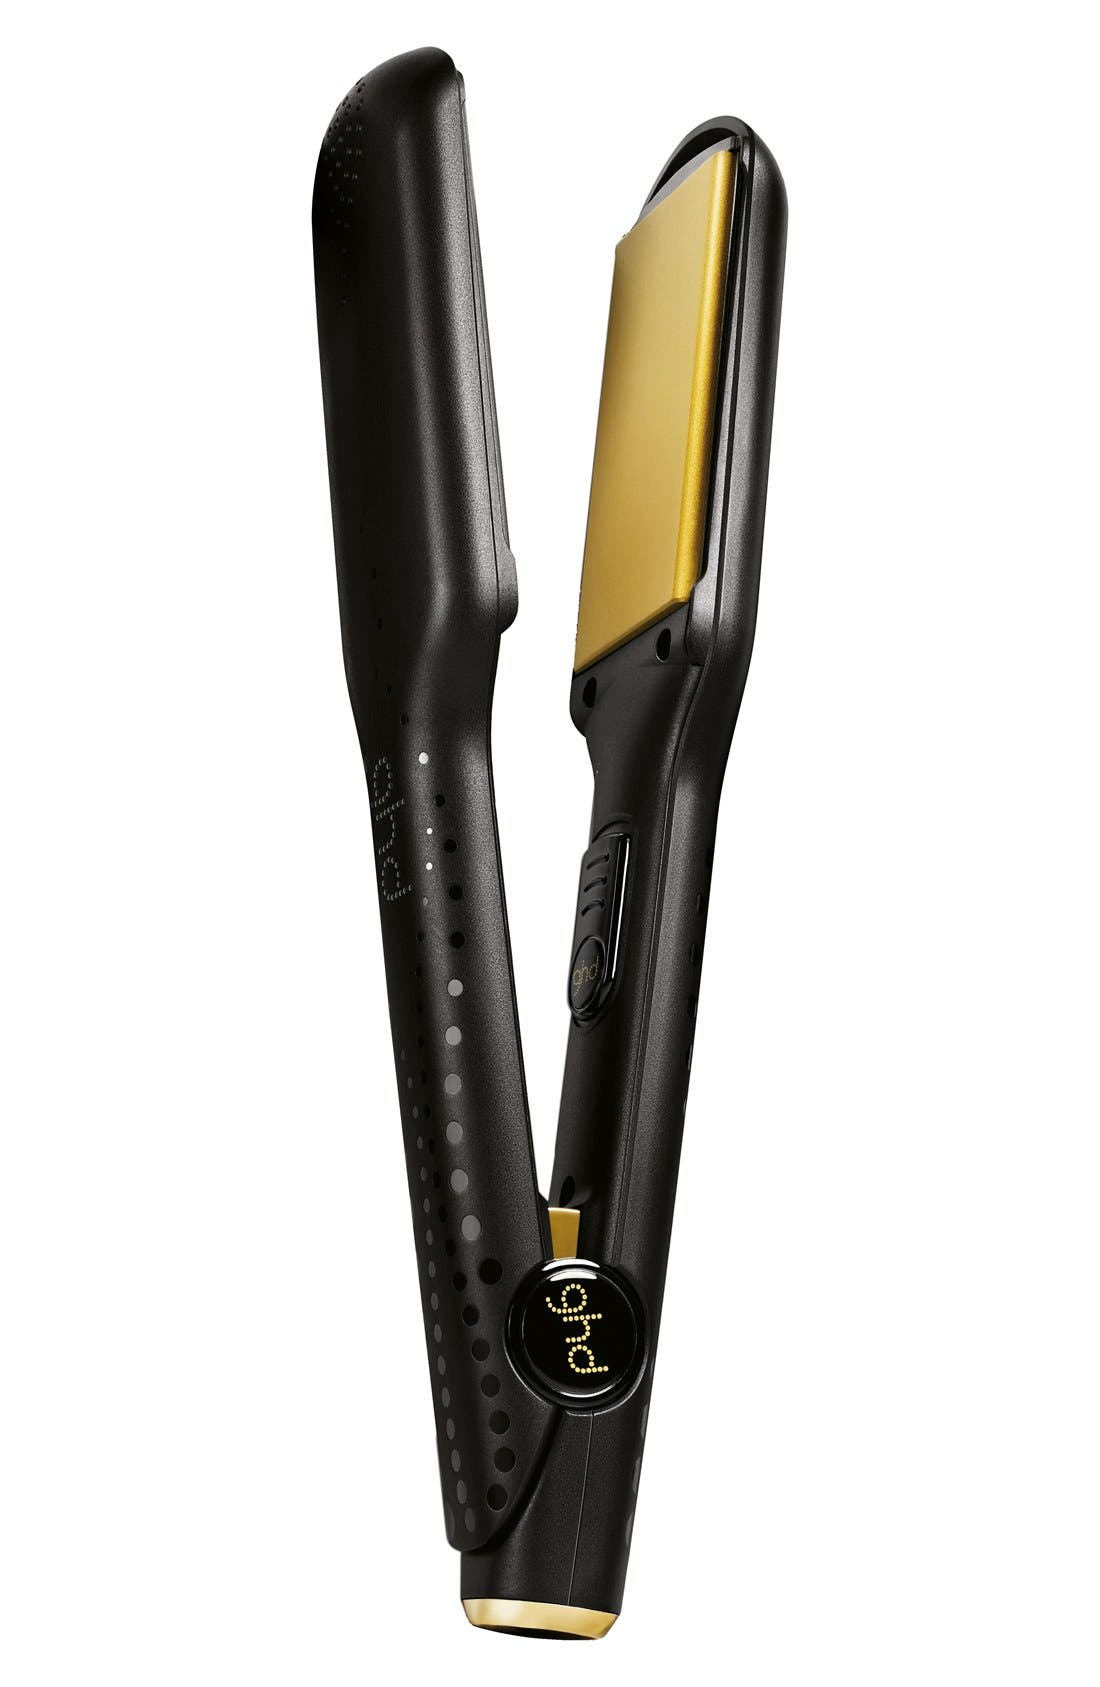 ghd Gold Series Professional Styler (2 Inch)